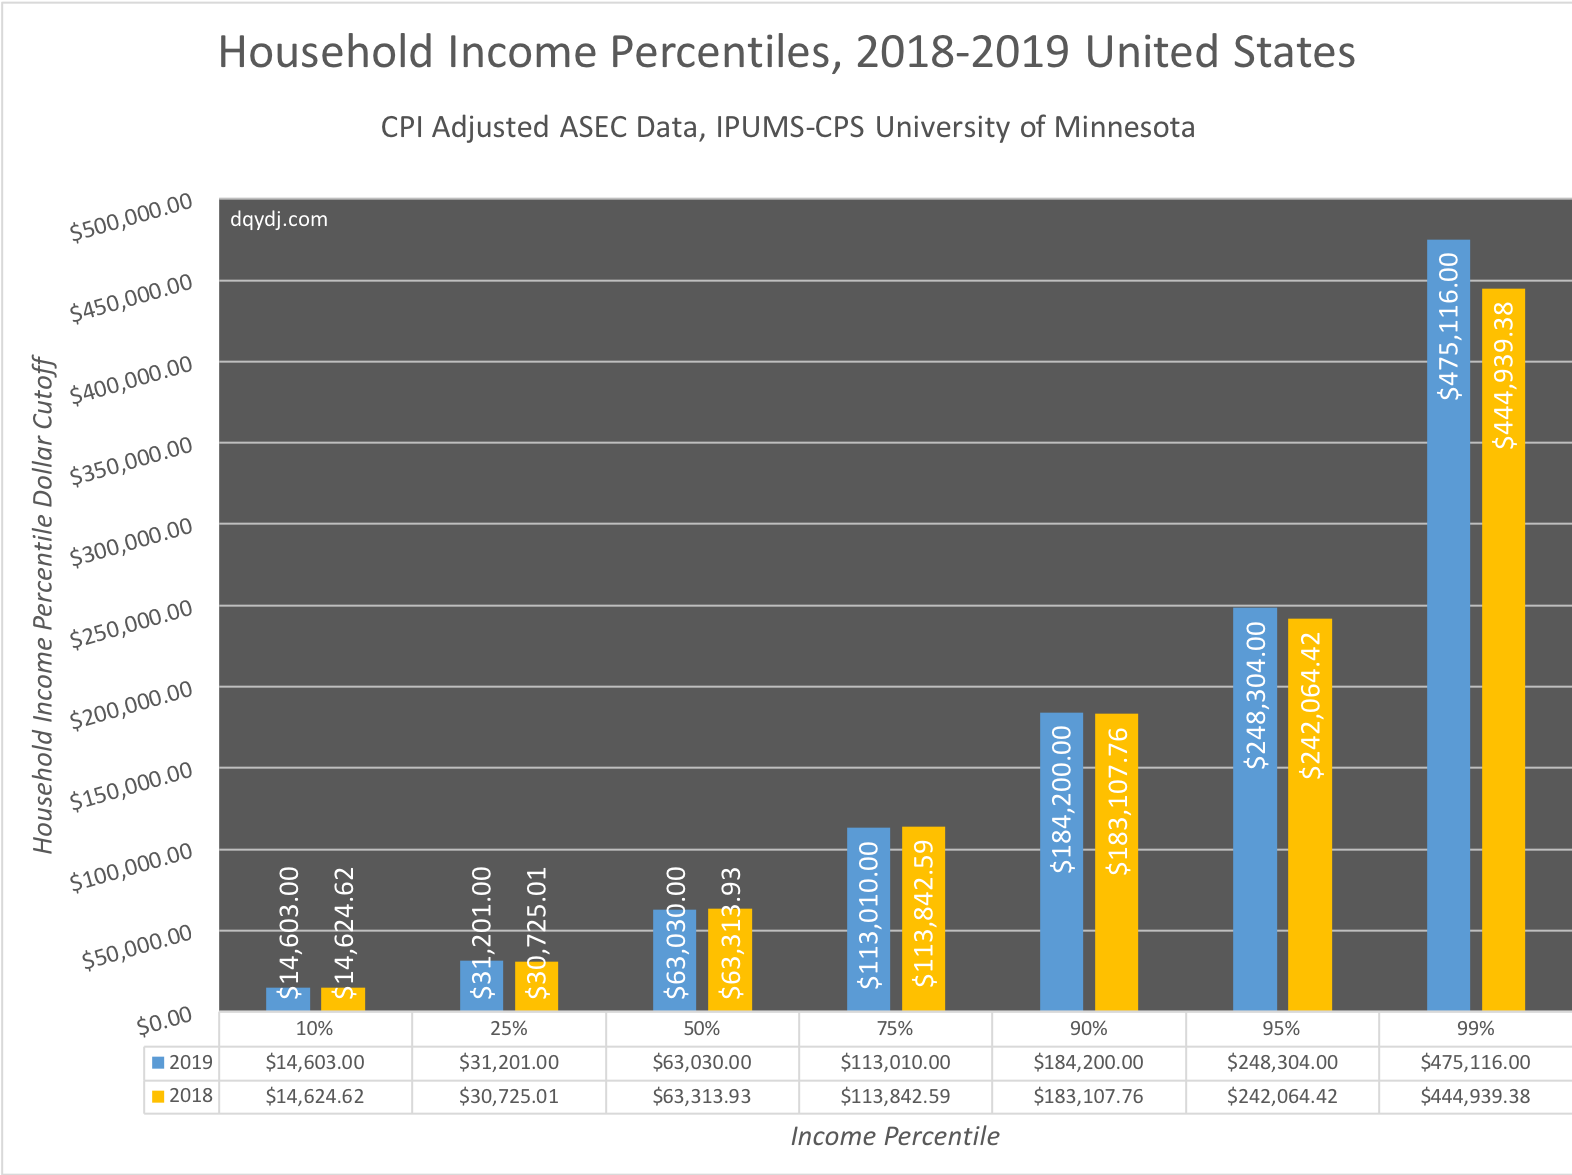 2019 Household Income vs. 2018 in the United States